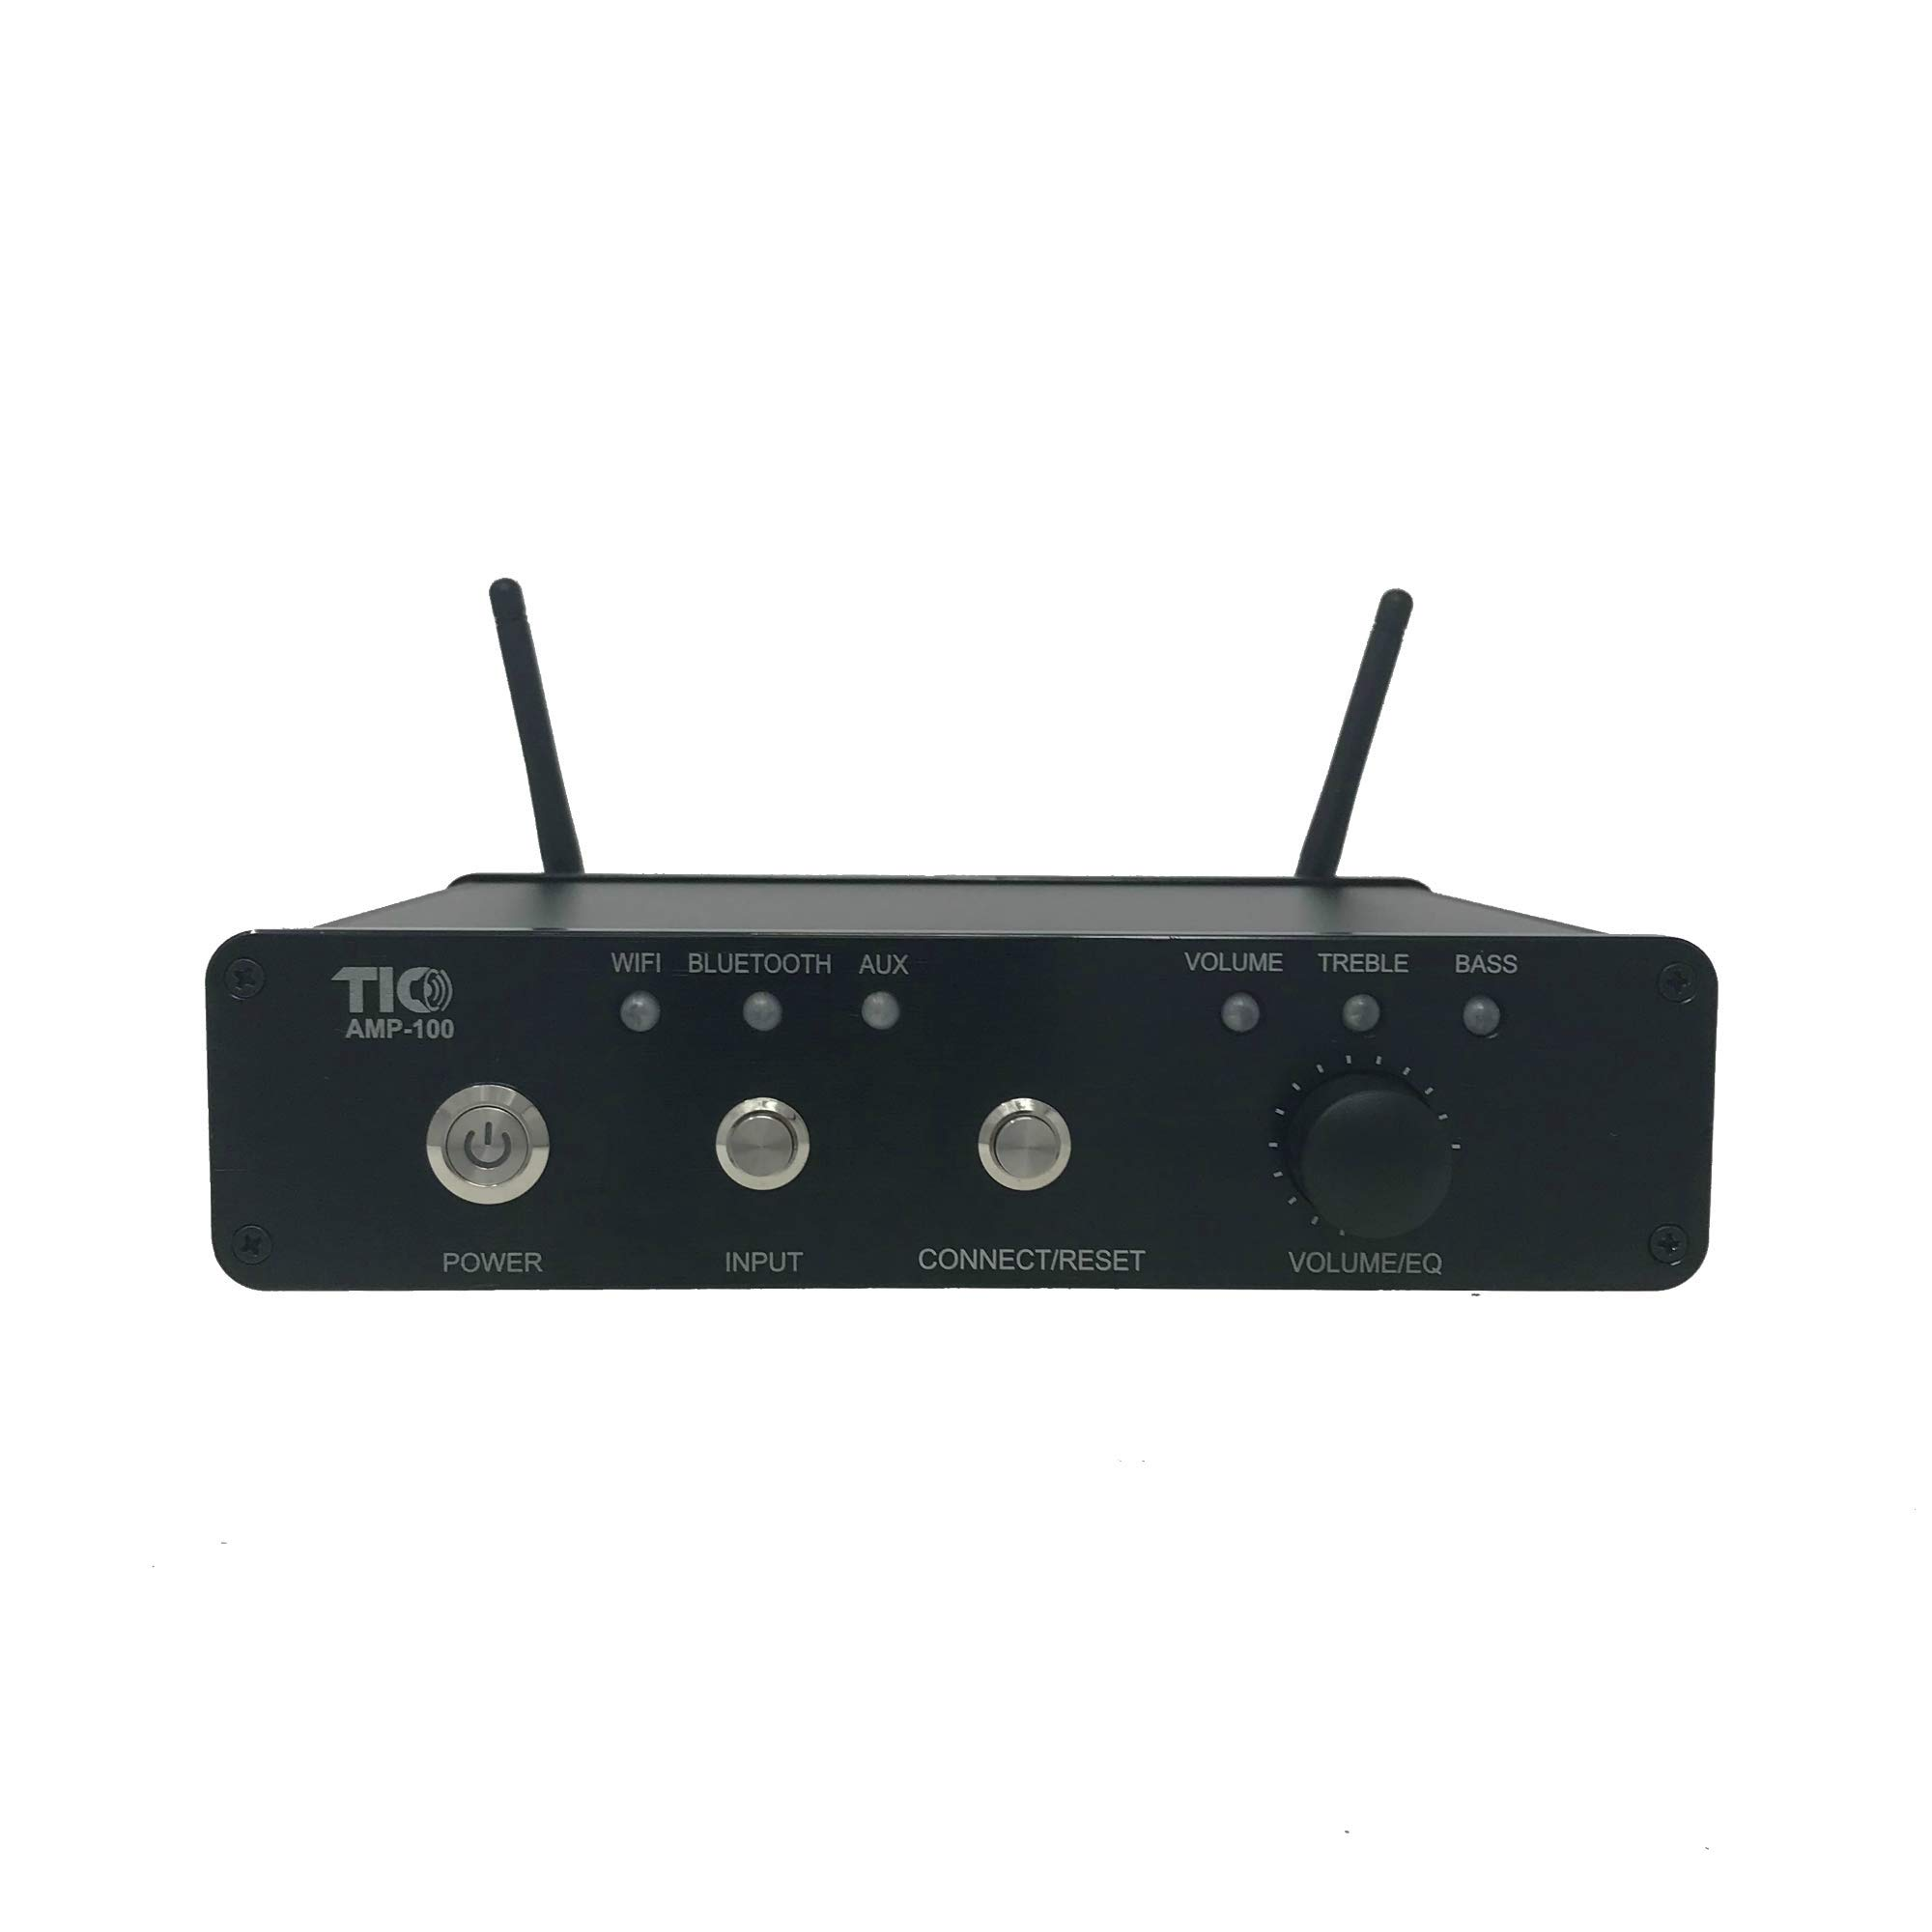 TIC AMP100 200W 4-Channel Indoor-Outdoor WiFi-Bluetooth Multiroom Amplifier with AirPlay by TIC